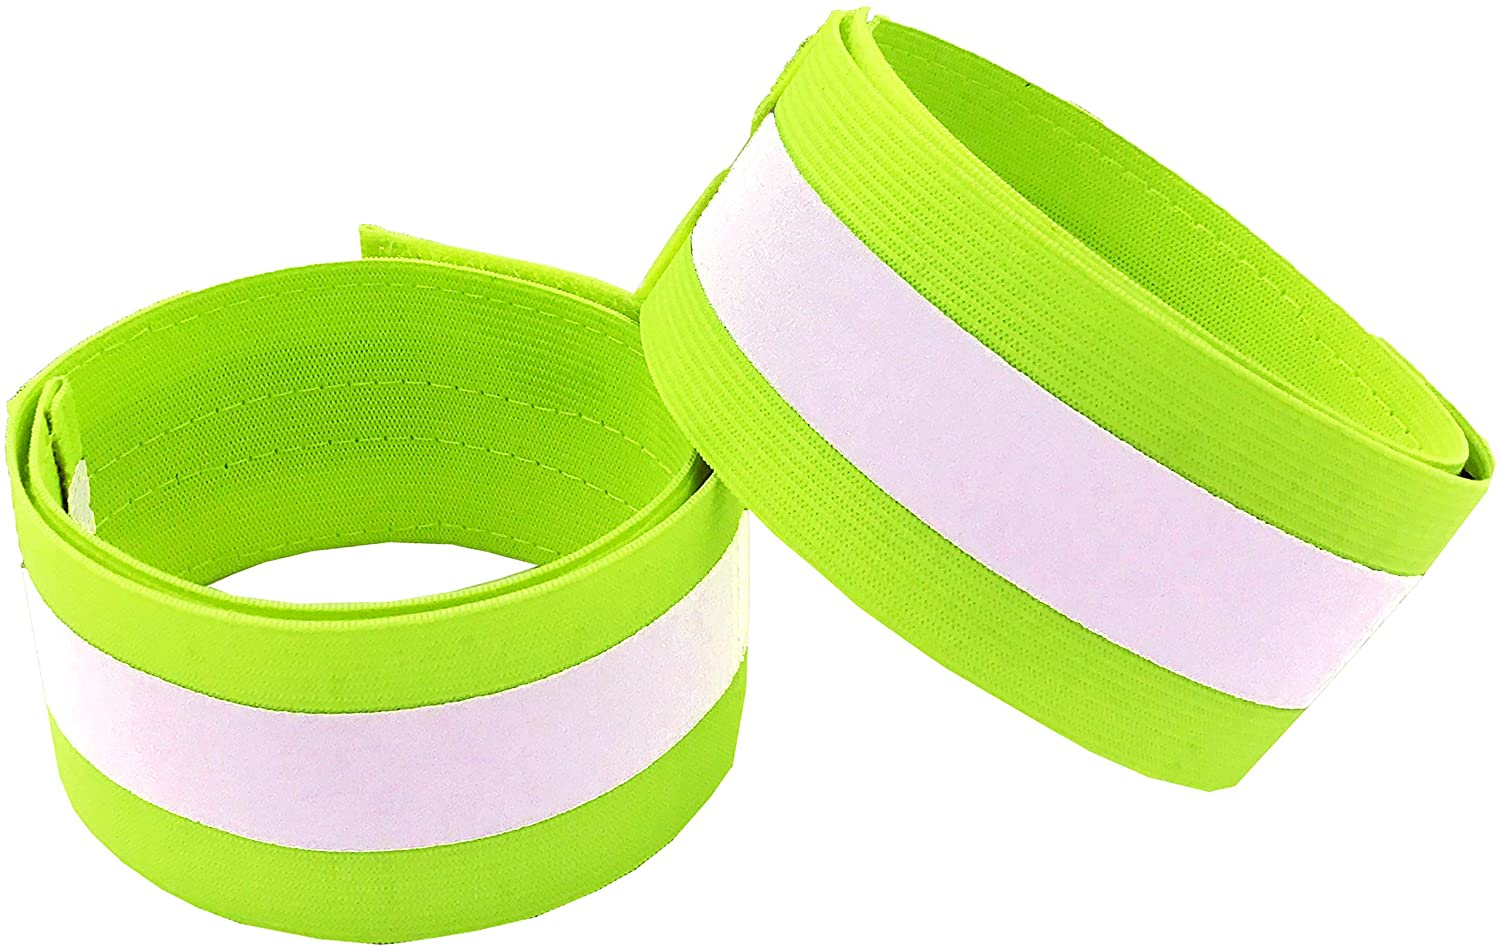 Reflective Bands for Arm, Wrist, Ankle, Leg. Reflector Bands. High Visibility Reflective Running Gear for Women and Men Cycling Walking Bike